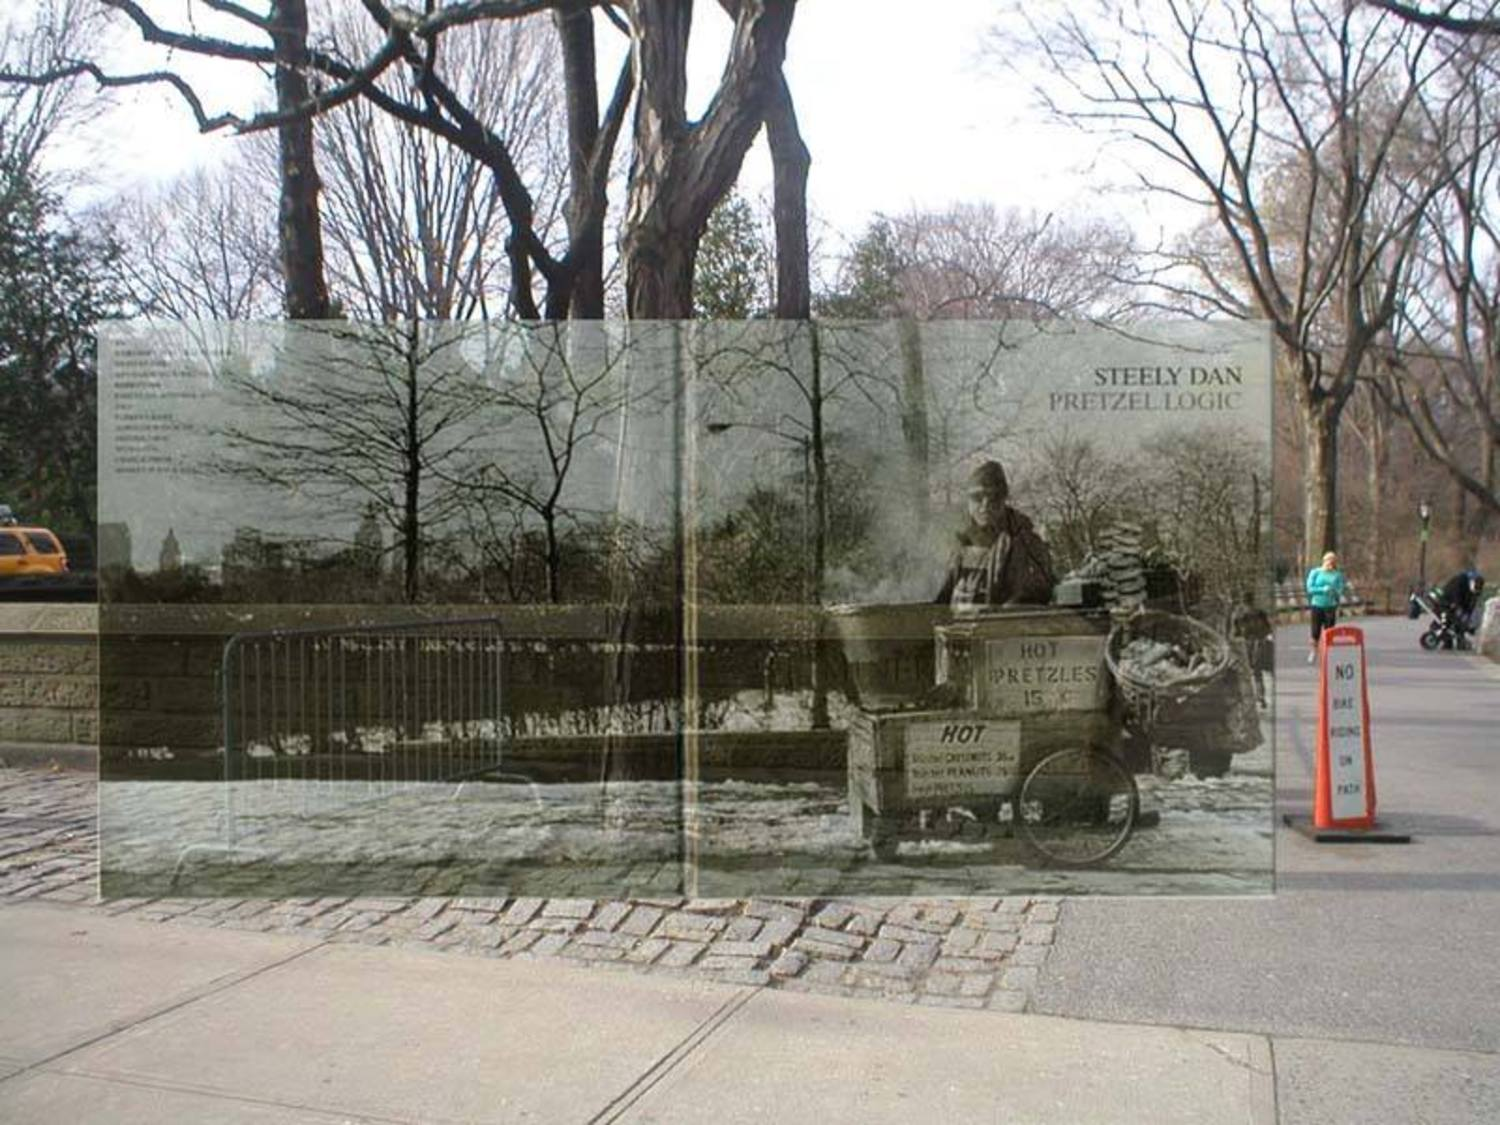 "PRETZEL LOGIC by STEELY DAN (1974). . .Location: Fifth Avenue and 79th Street, west side of street, at the entrance to Central Park known as ""Miner's Gate"" just below The Metropolitan Museum of Art.. . .photo by Reanne Rubenstein. . .With the passing of Walter Becker this week, I thought I'd repost this early PopSpot of the location of Pretzel Logic . . .In the New York Times obituary of Walter Becker today, they wrote this of Steely Dan's sophisticated but popular sound:  ""Meanwhile the music used richly ambiguous harmonies rooted in Debussy, Duke Ellington, Charlier Parker and Sonny Rollins, giving the songs a sophisticated core that would be widely influential across jazz and pop."" . . .(By the way, the official NYC Park prices for those 15-cent pretzels would be $2.00 today. (They are spelled ""pretzles"" on the cover.). . . To see the album cover location in Google Street View, click here: http://bit.ly/2eyfaKs  . . .  For the original PopSpot story of searching for  the location, click here:  http://www.popspotsnyc.com/pretzel_logic/"